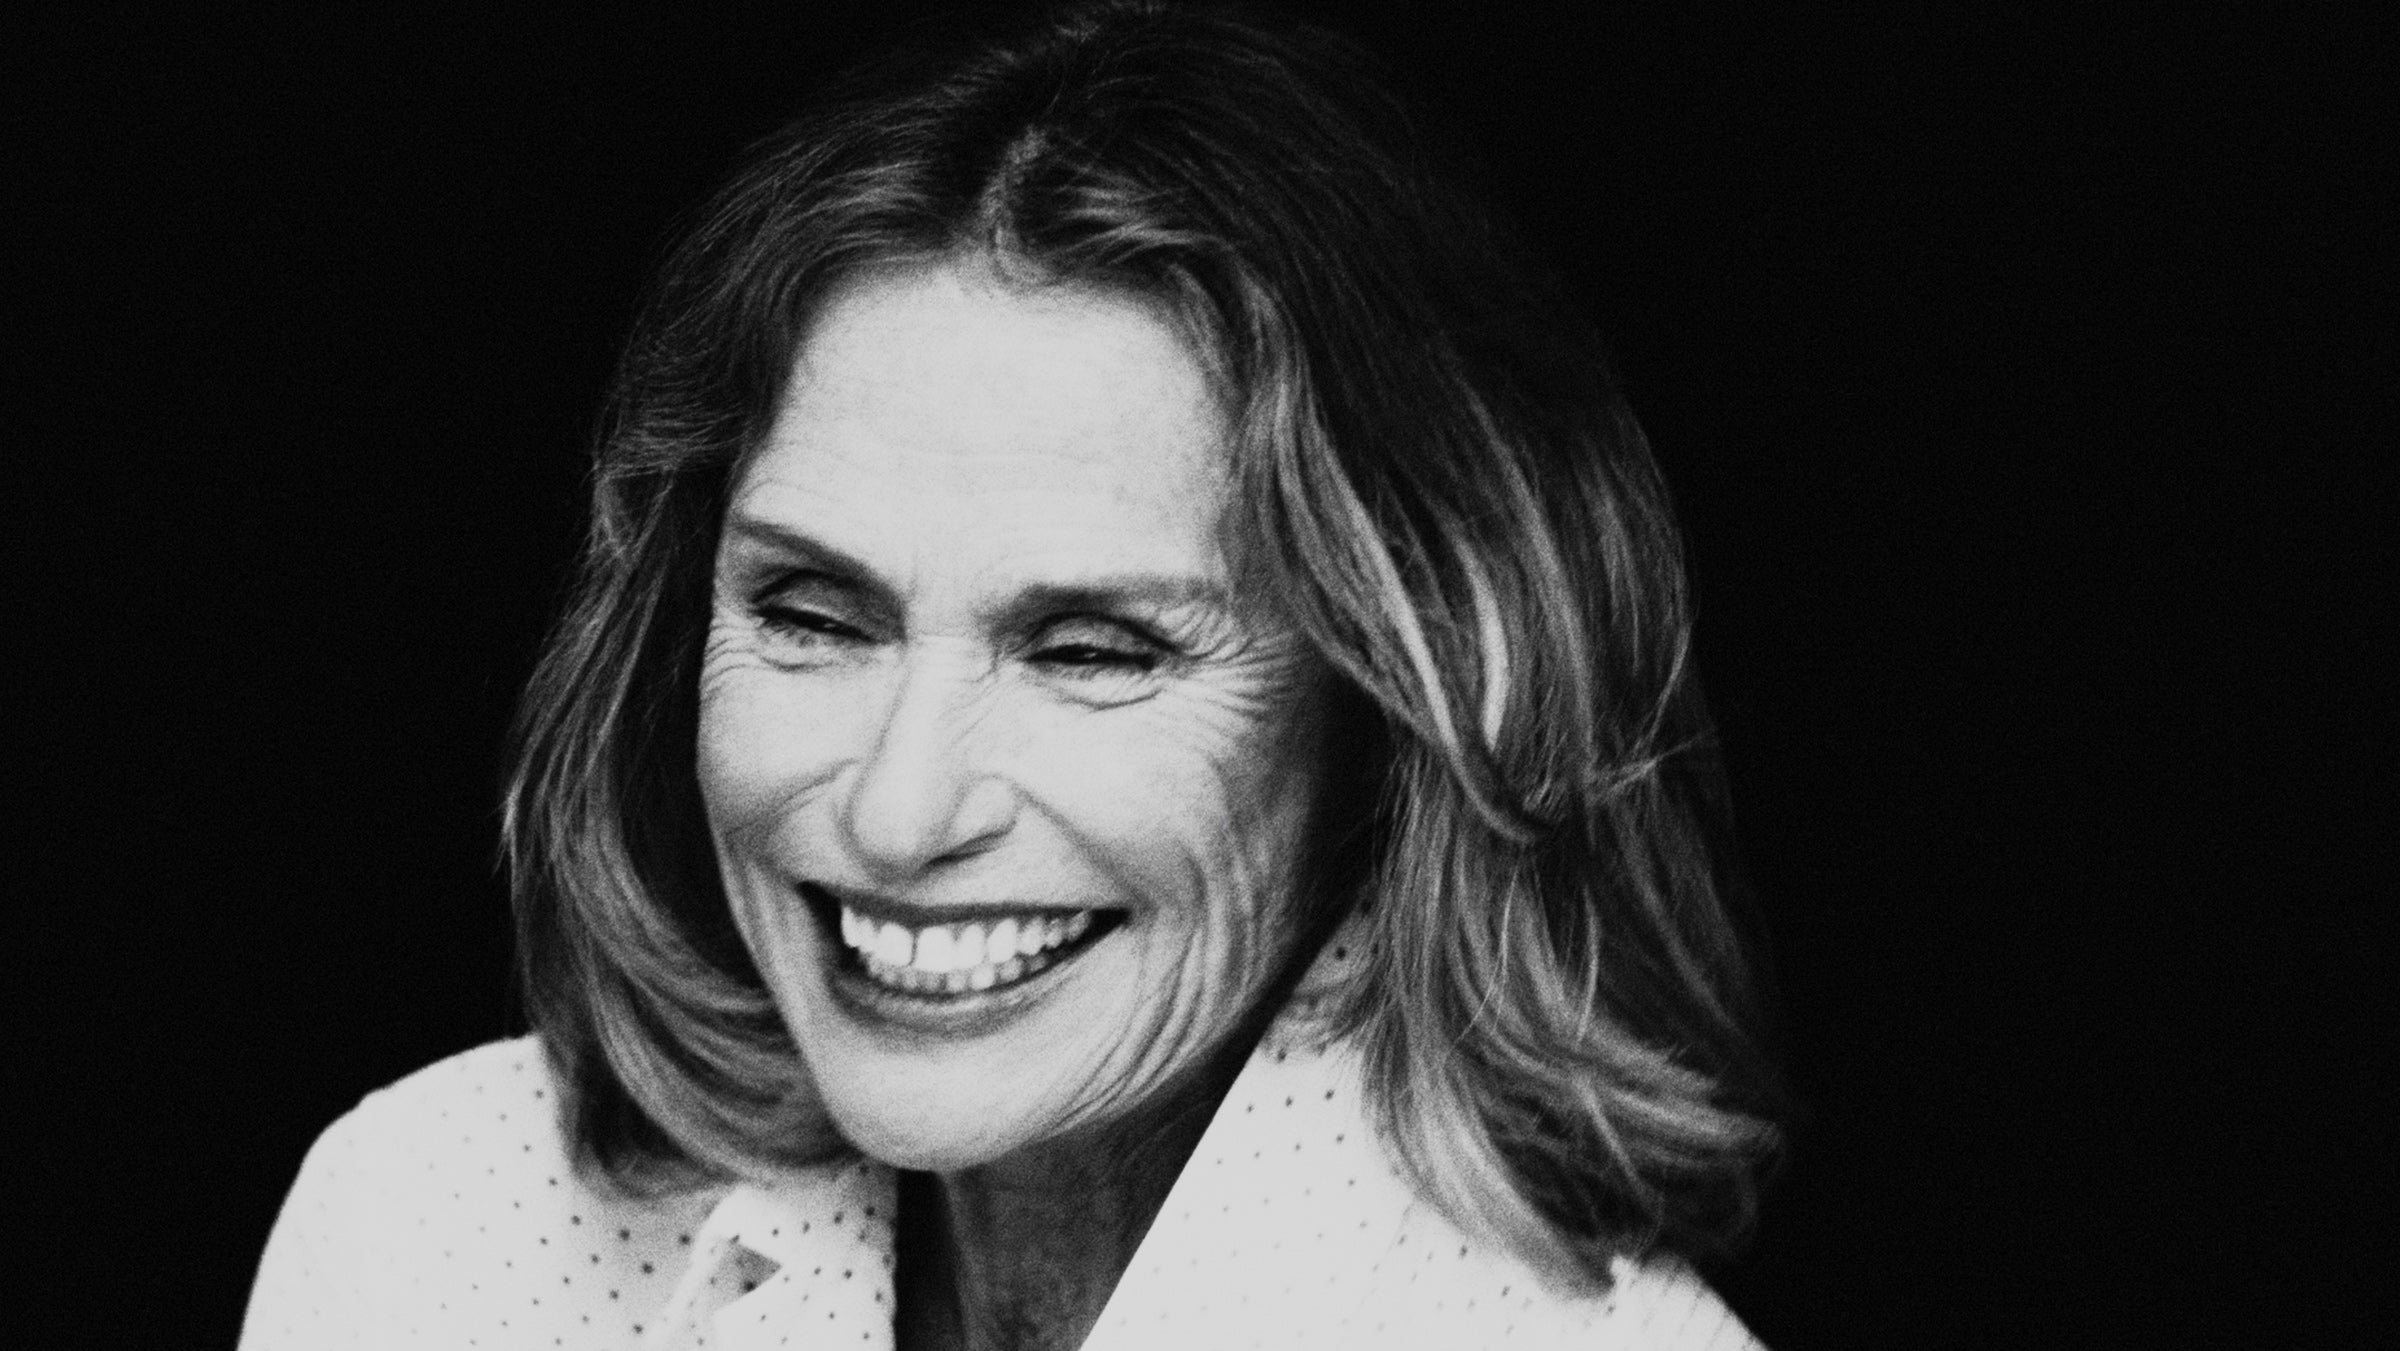 Watch Lauren Hutton's Video